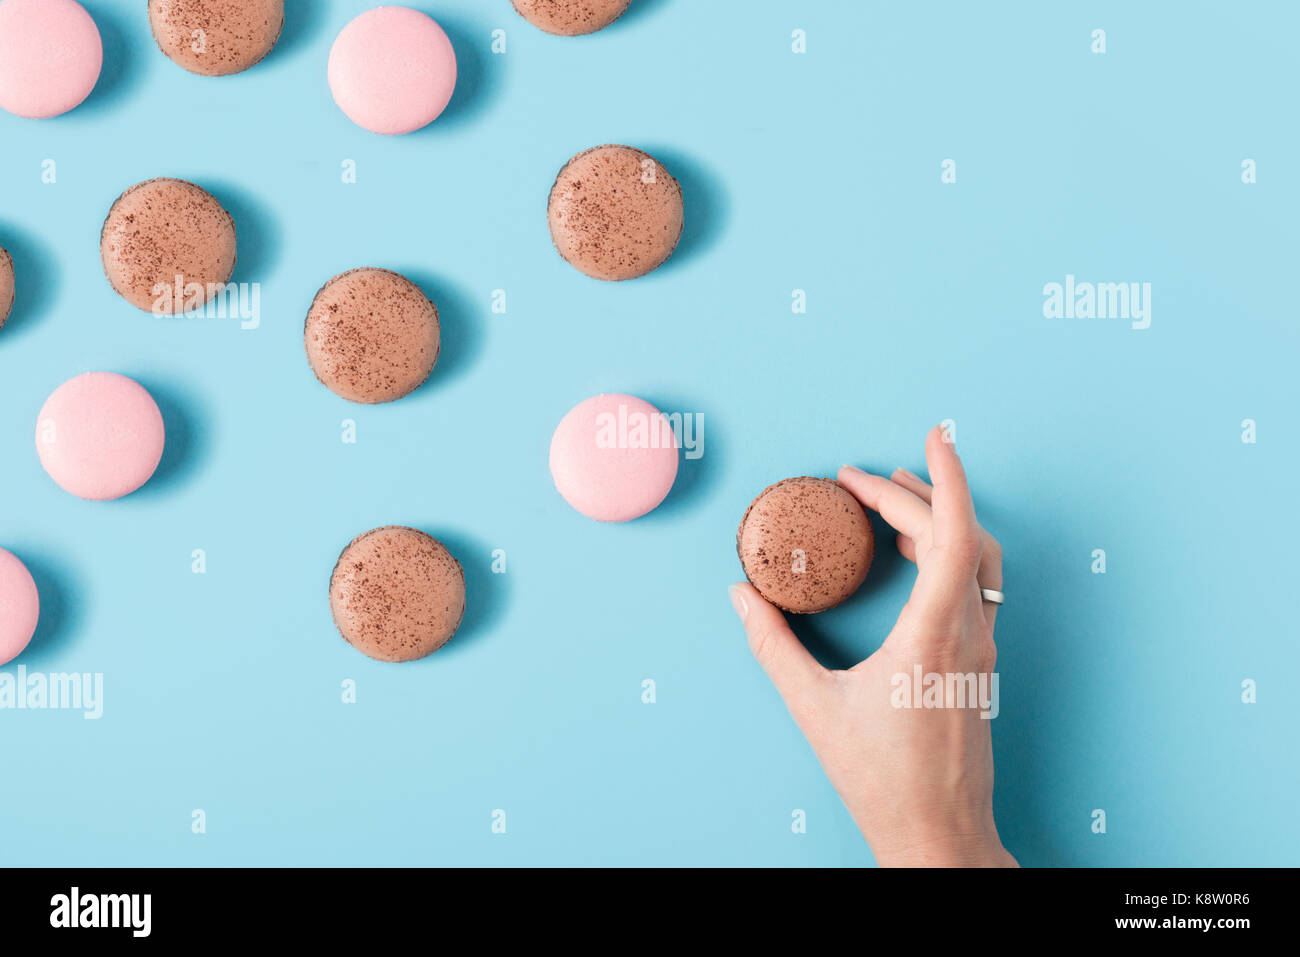 female hand and macarons - Stock Image